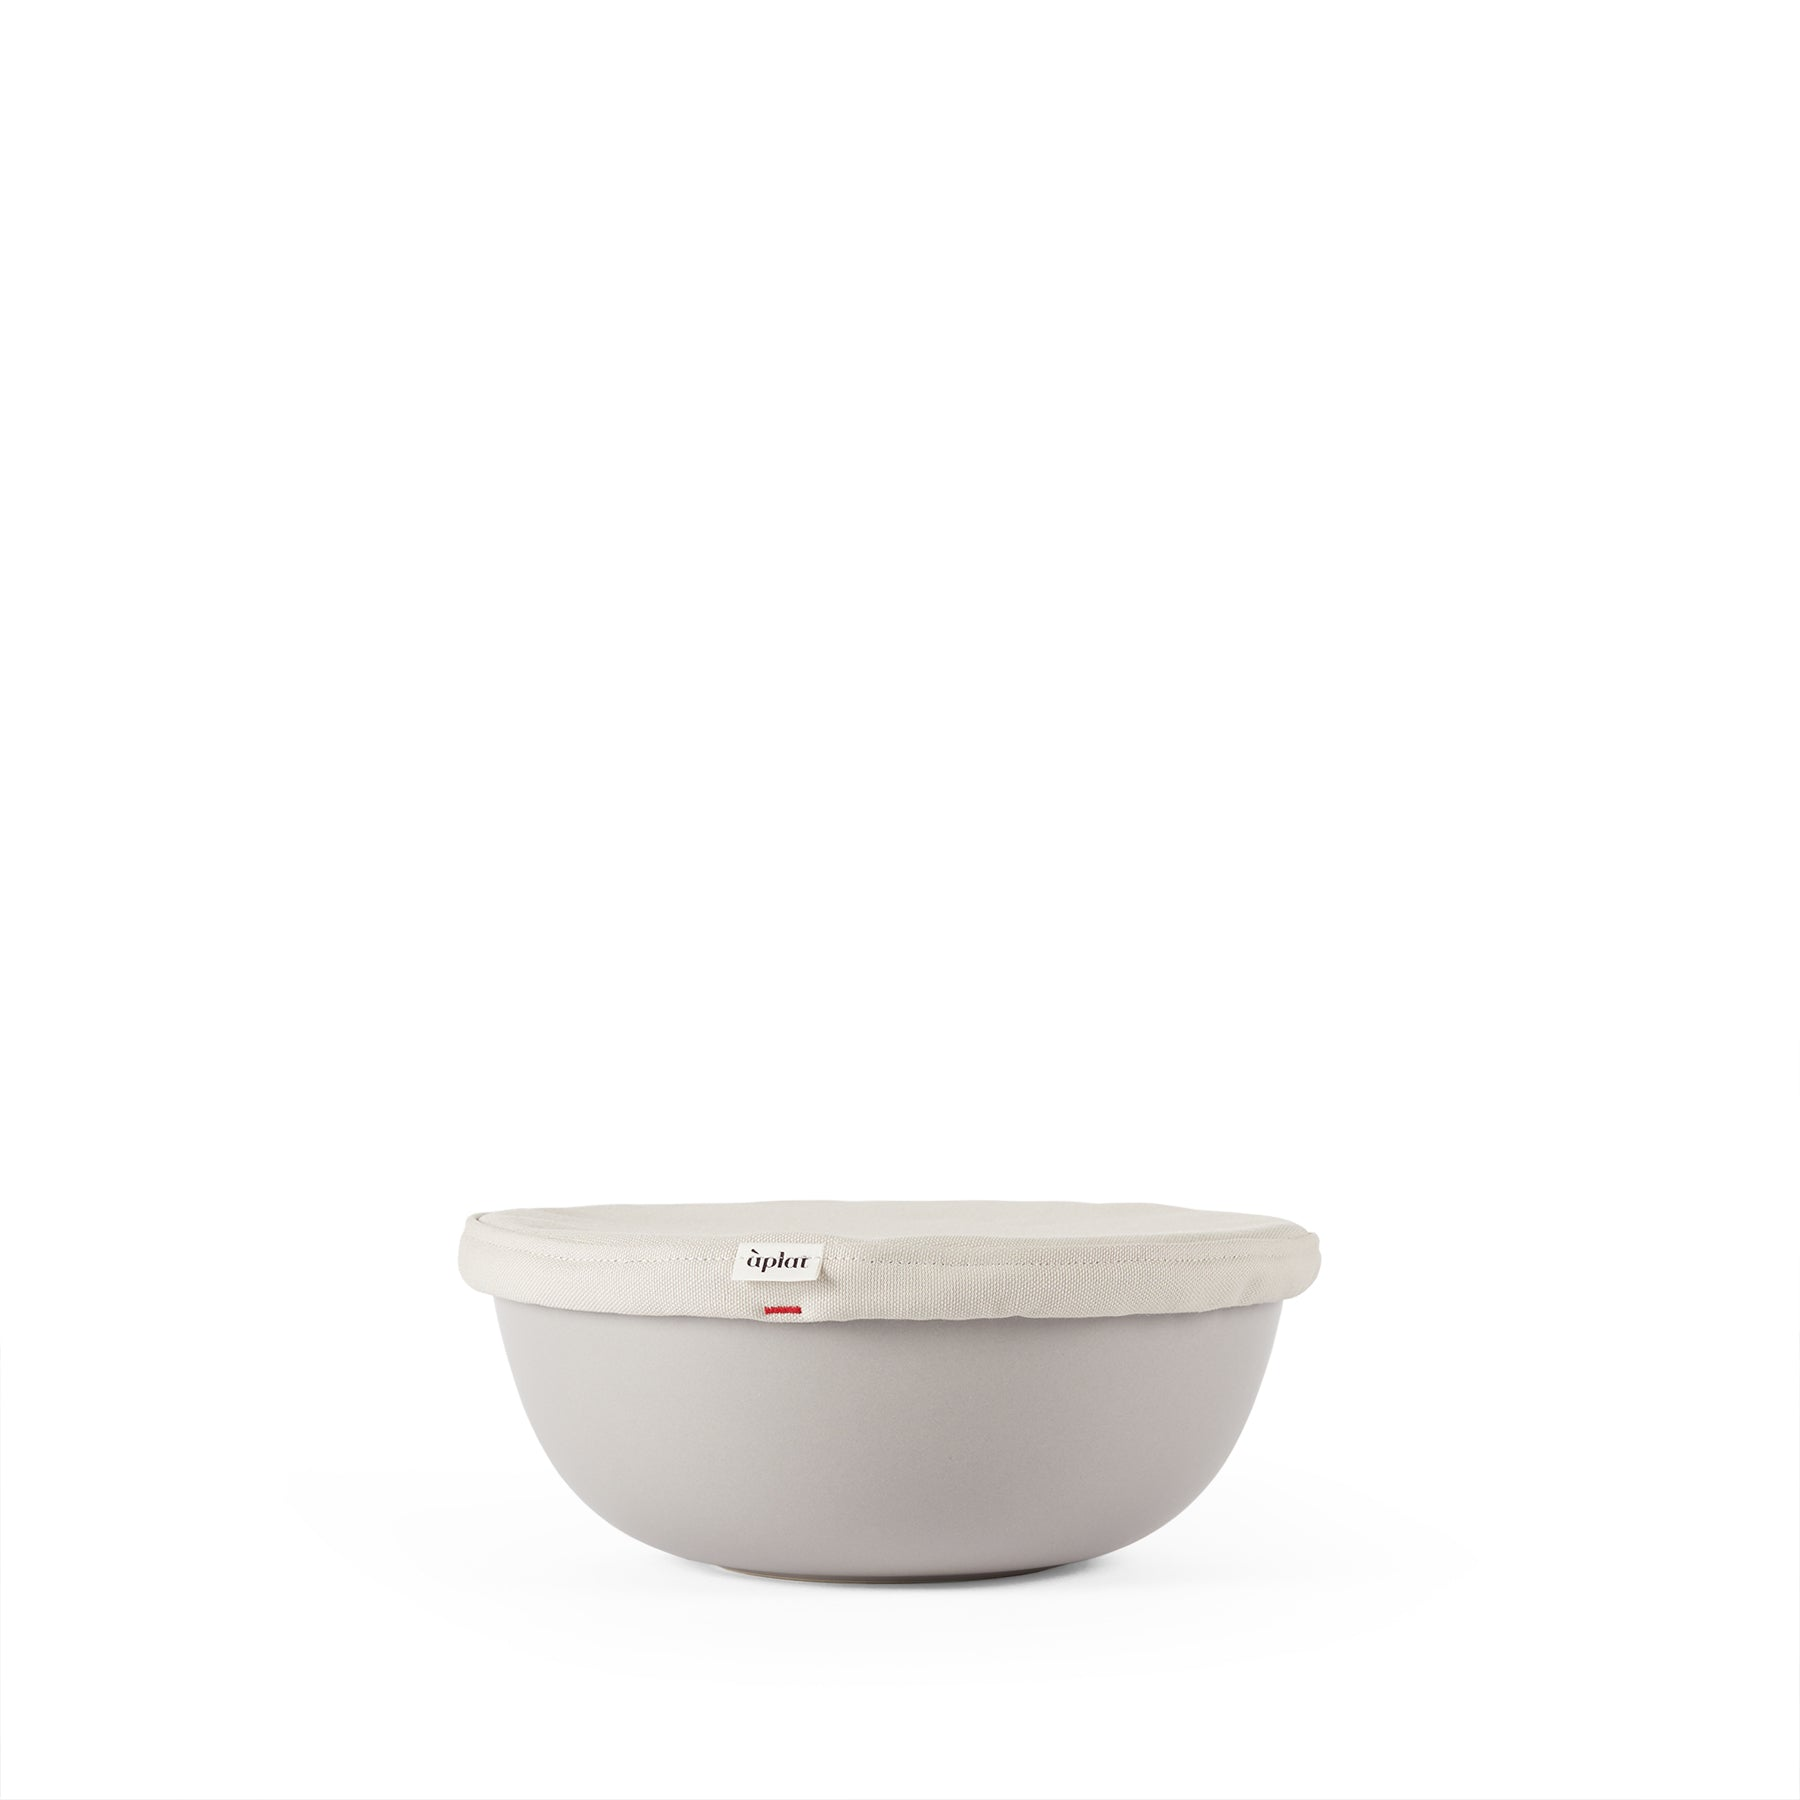 Couvre-Plat Round Medium Bowl Cover in Stone Zoom Image 1